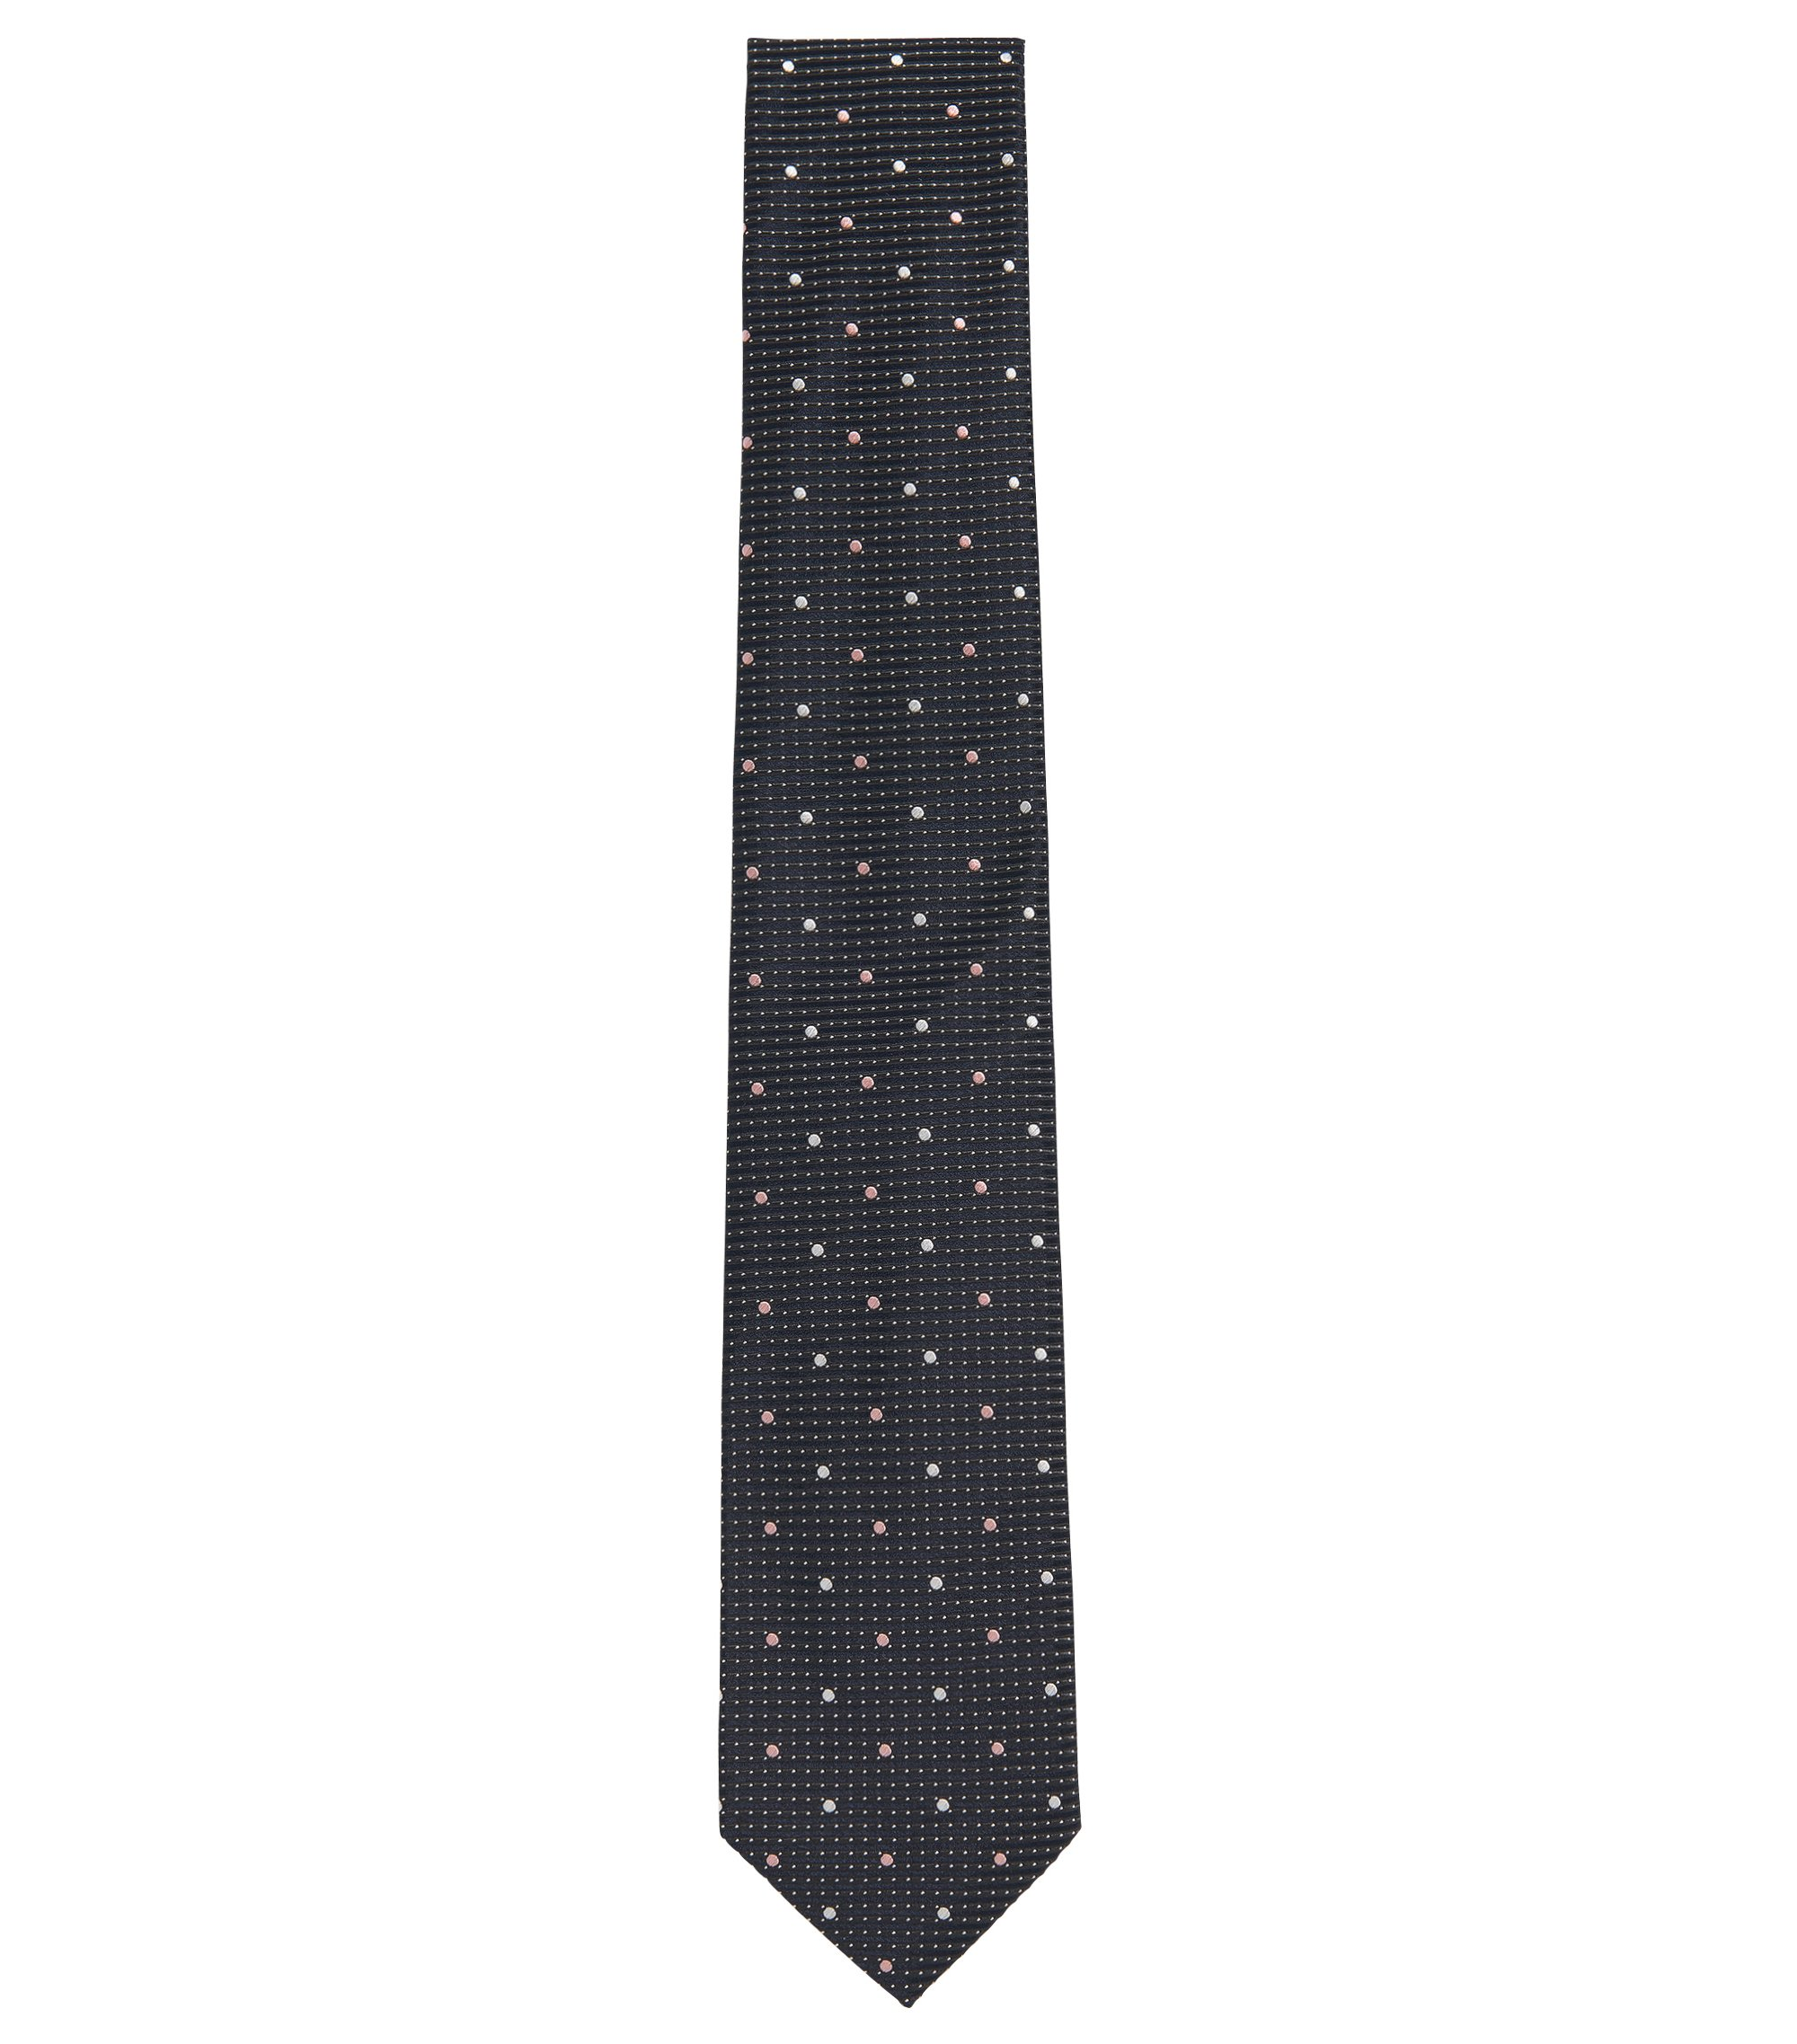 Patterened Italian Silk Tie, Charcoal